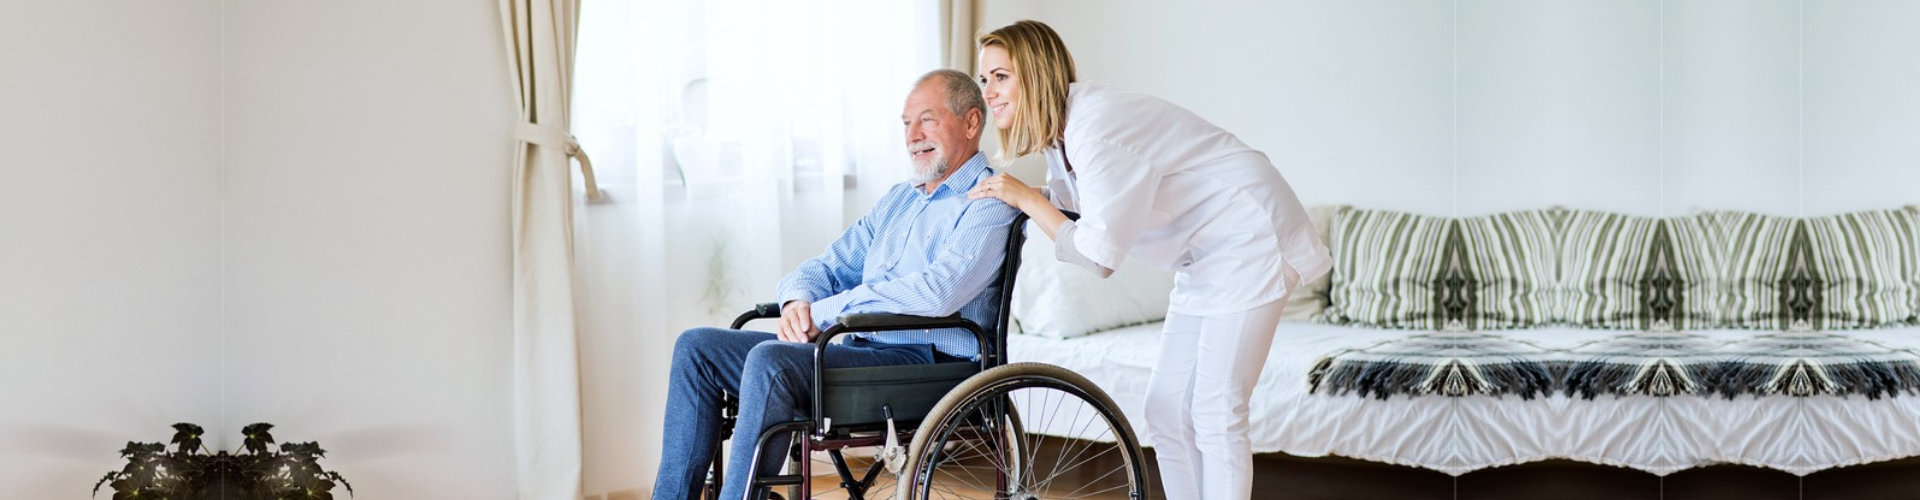 Health visitor or a nurse and a senior men in a wheelchair during home visit.